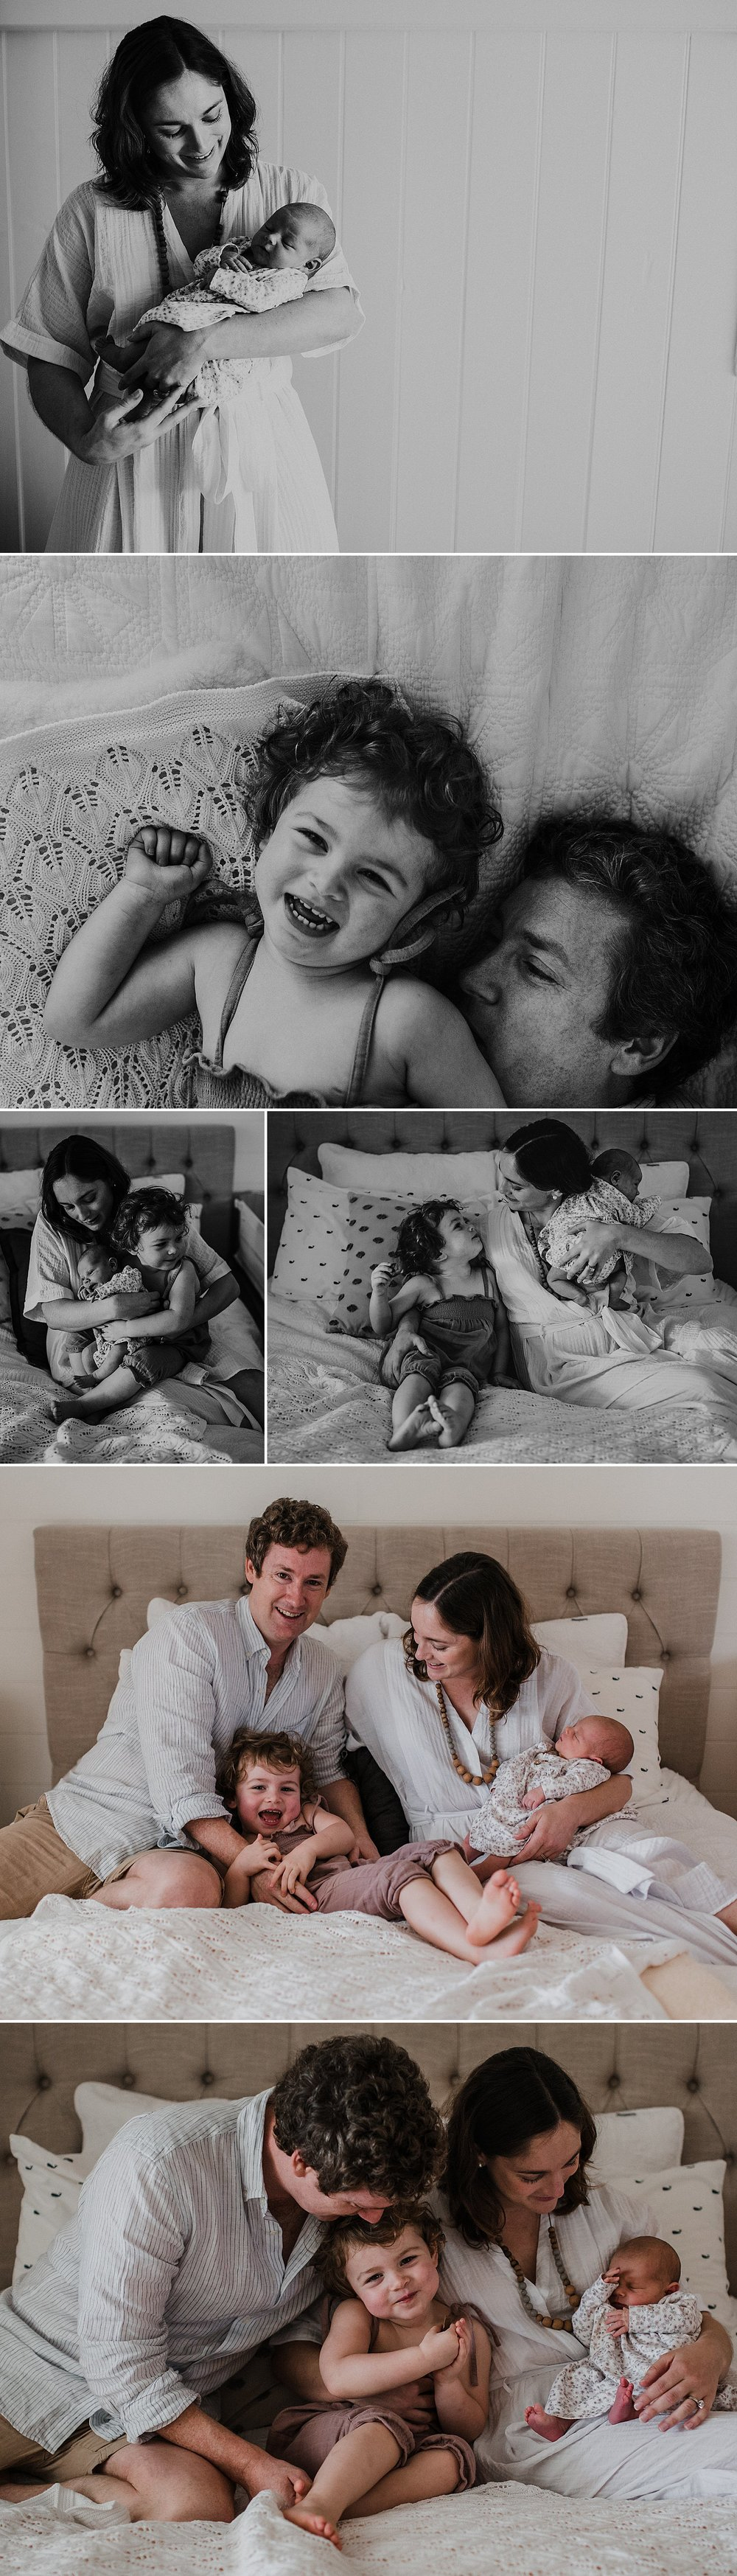 relaxed-family-photos-at-home-newborn-baby-and-toddler-child-earthy-natural-vibe